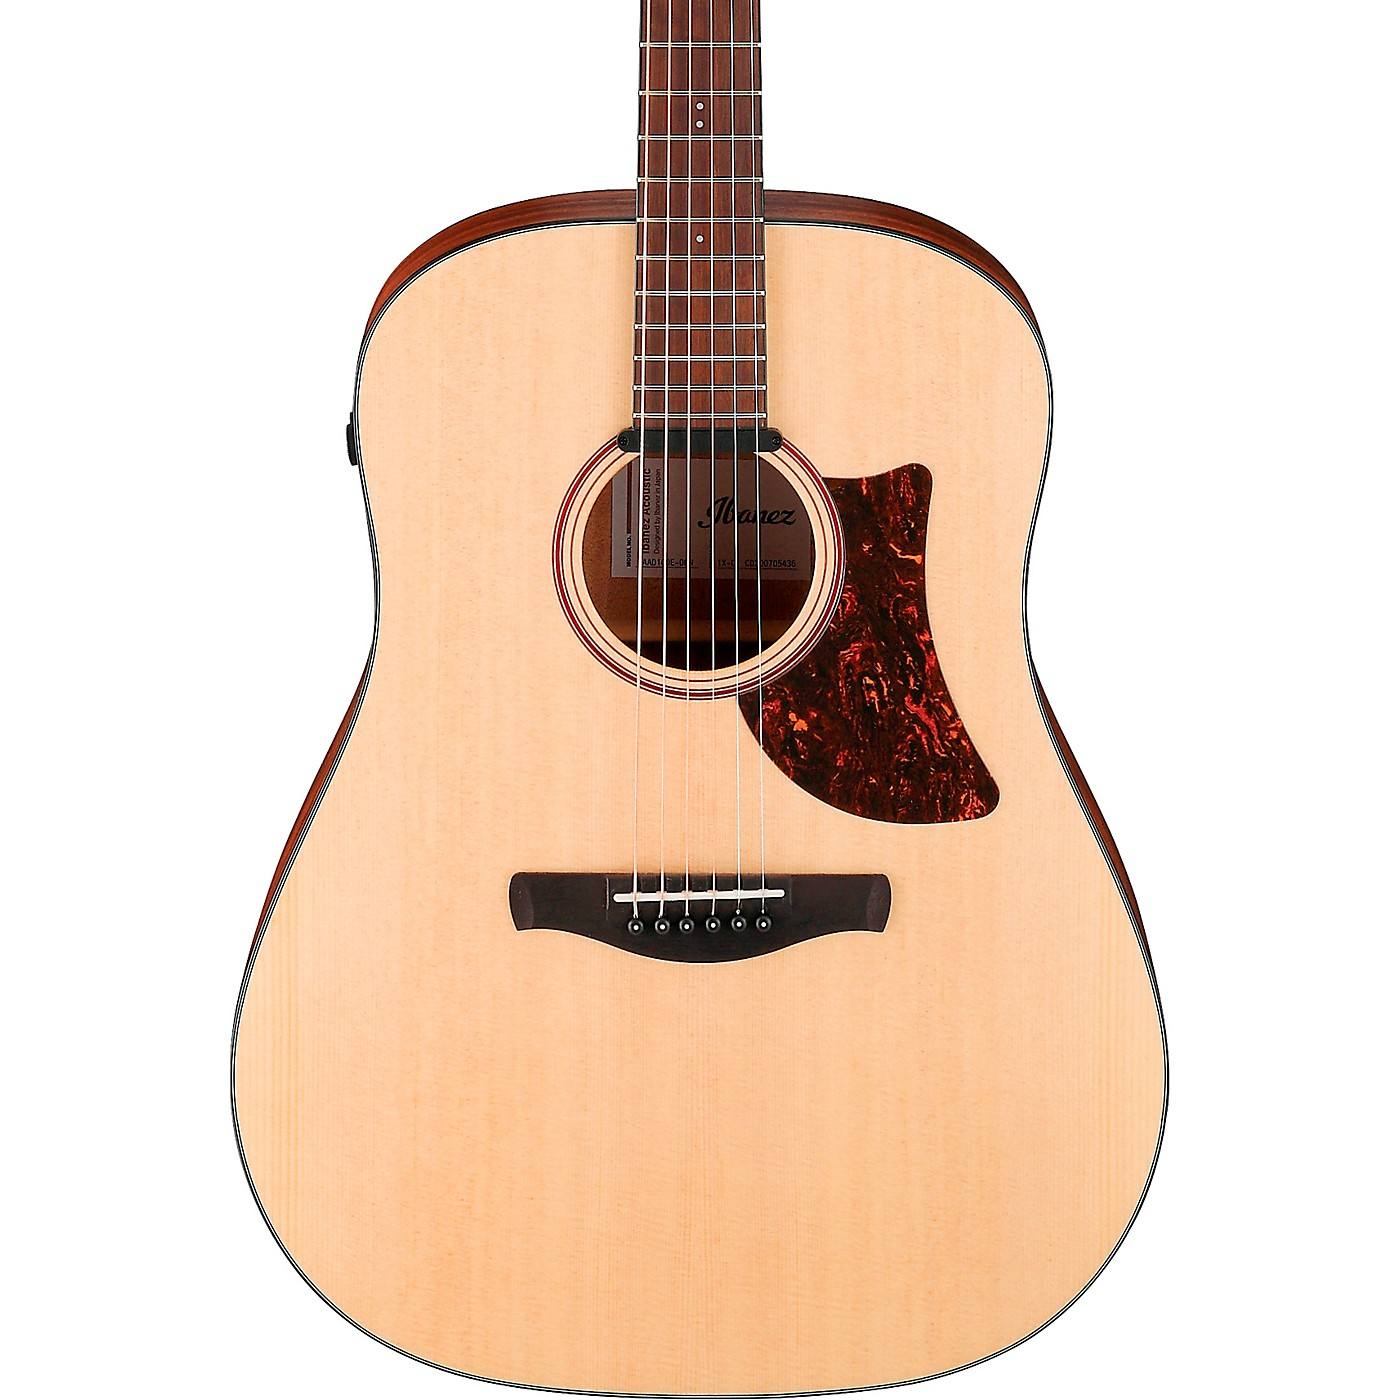 Ibanez AAD100E Advanced Acoustic Solid Top Dreadnought Guitar thumbnail